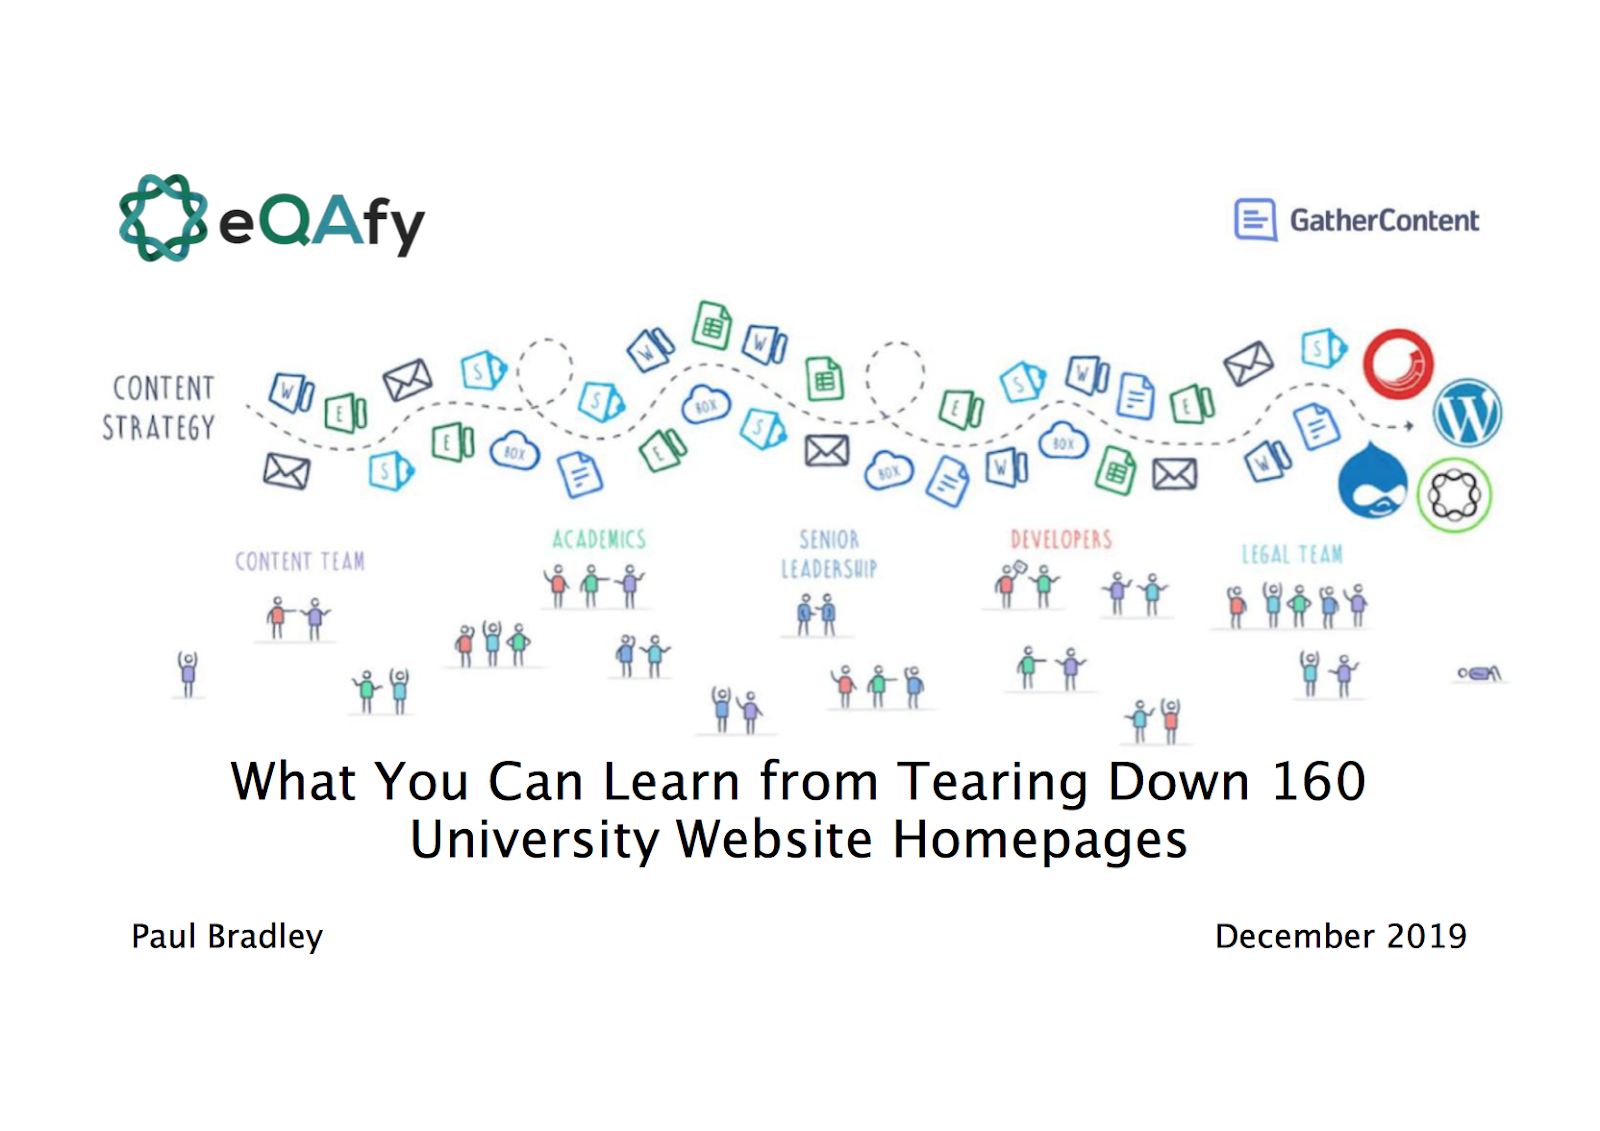 Slide showing the eQAfy and GatherContent logos, and the title 'What you can learn from tearing down 160 university website homepages.'